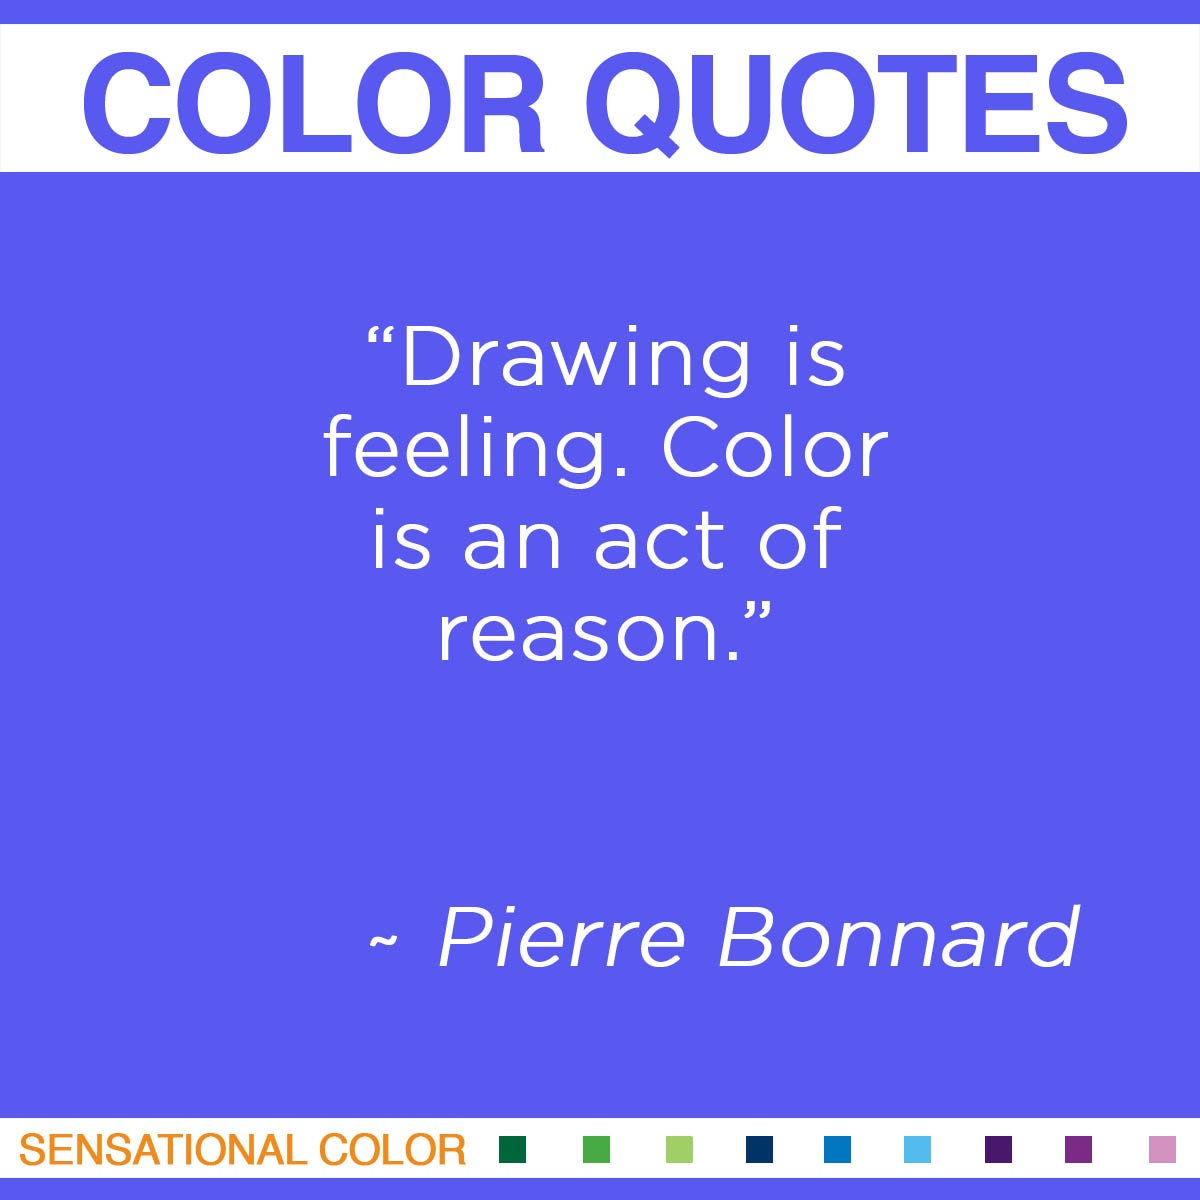 """Drawing is feeling. Color is an act of reason."" - Pierre Bonnard"